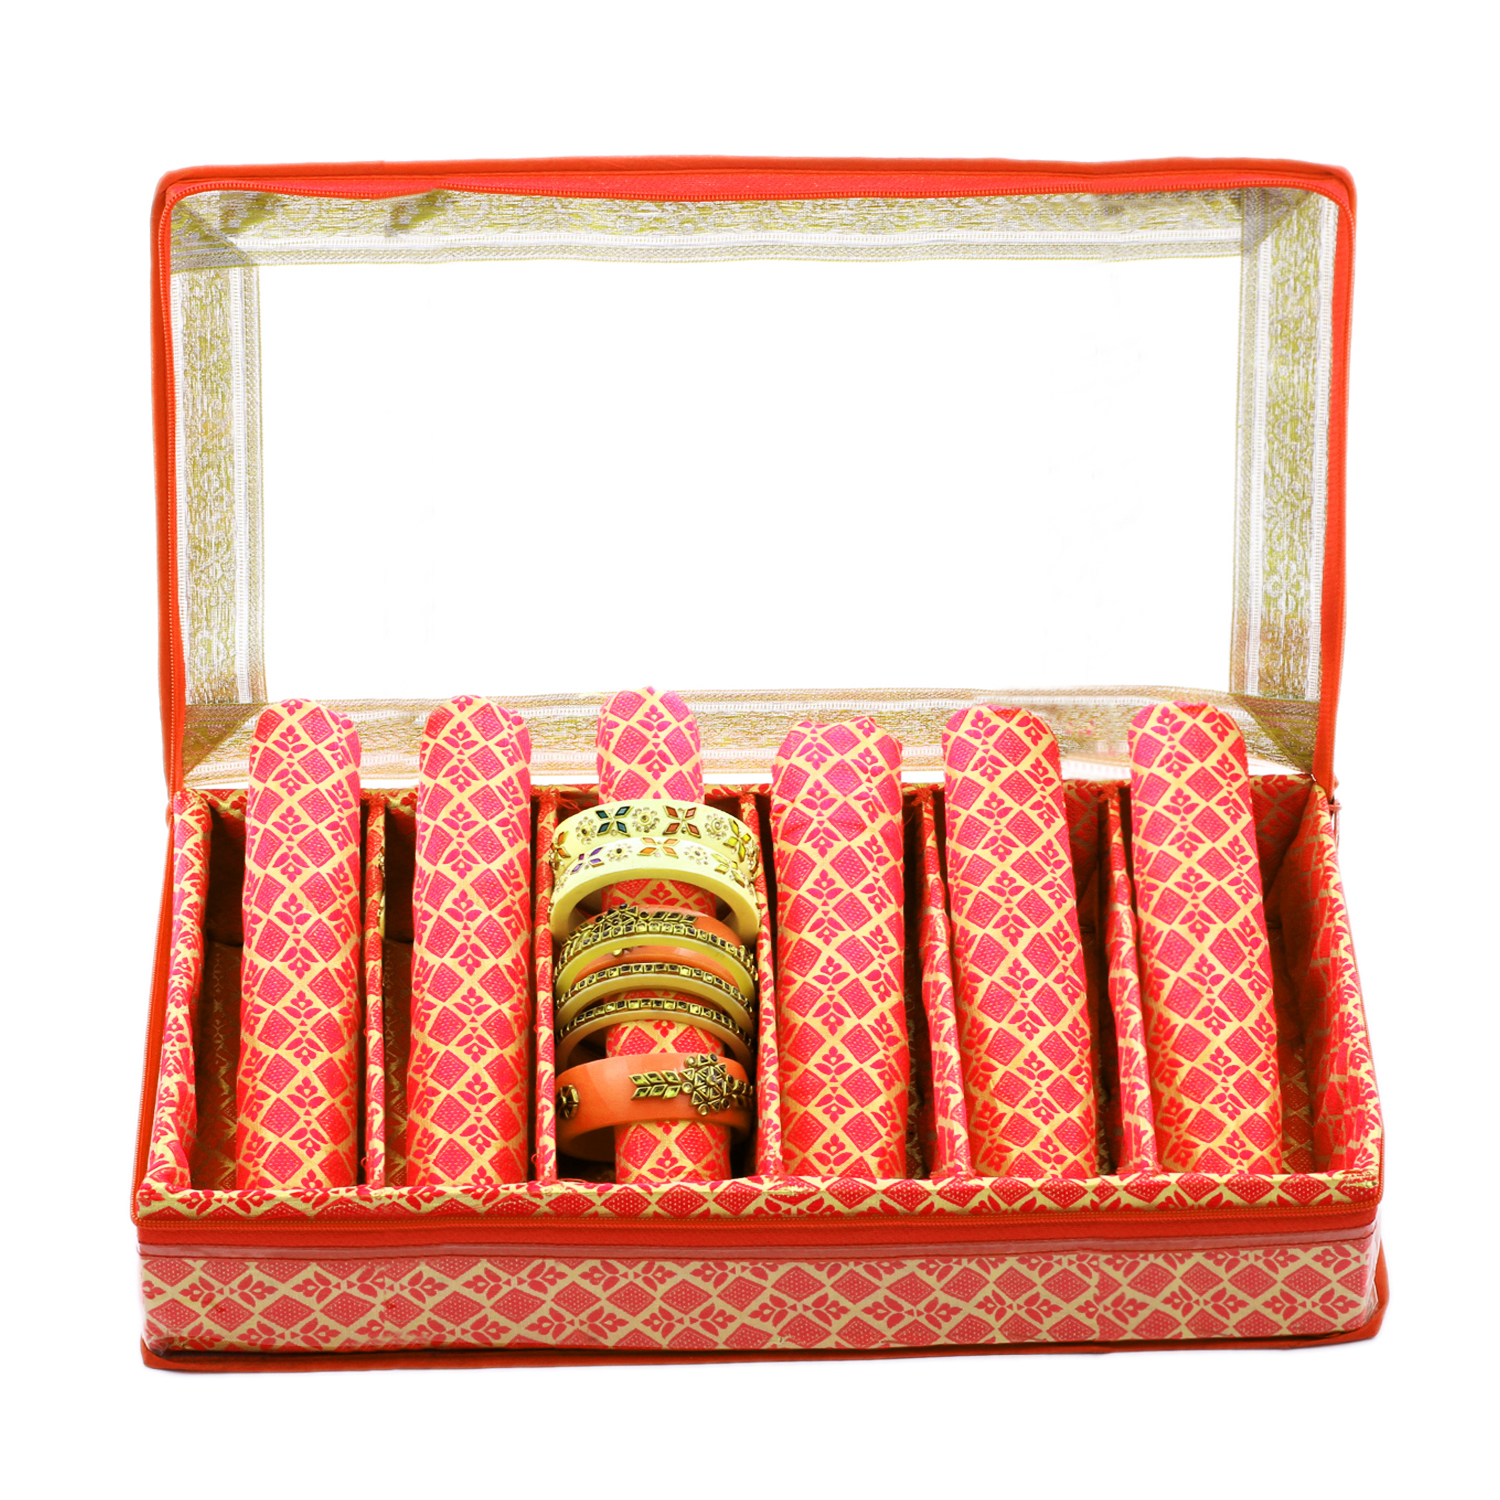 Kuber Industries Brocade Hardboard 2 Pieces Six Rod Bangle Box (Orange) - CTKTC22978